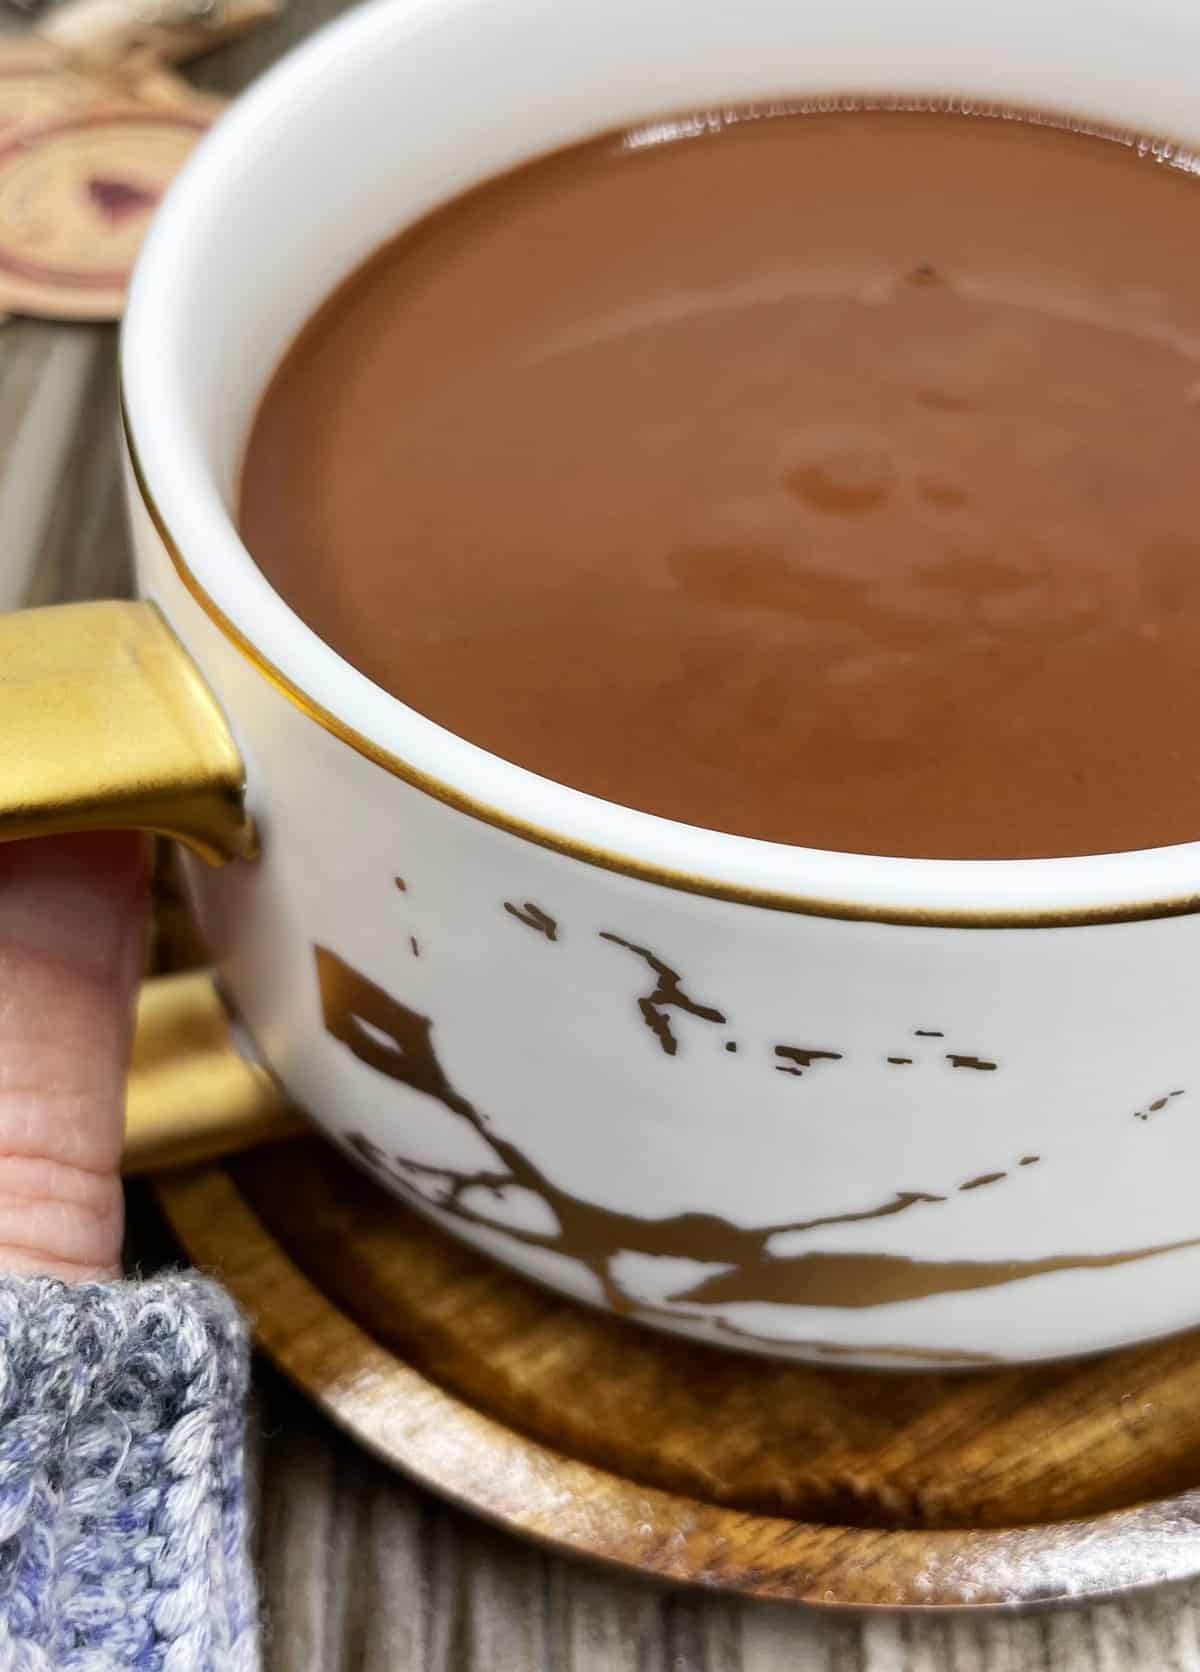 A cup of French hot chocolate held in a hand: Close up